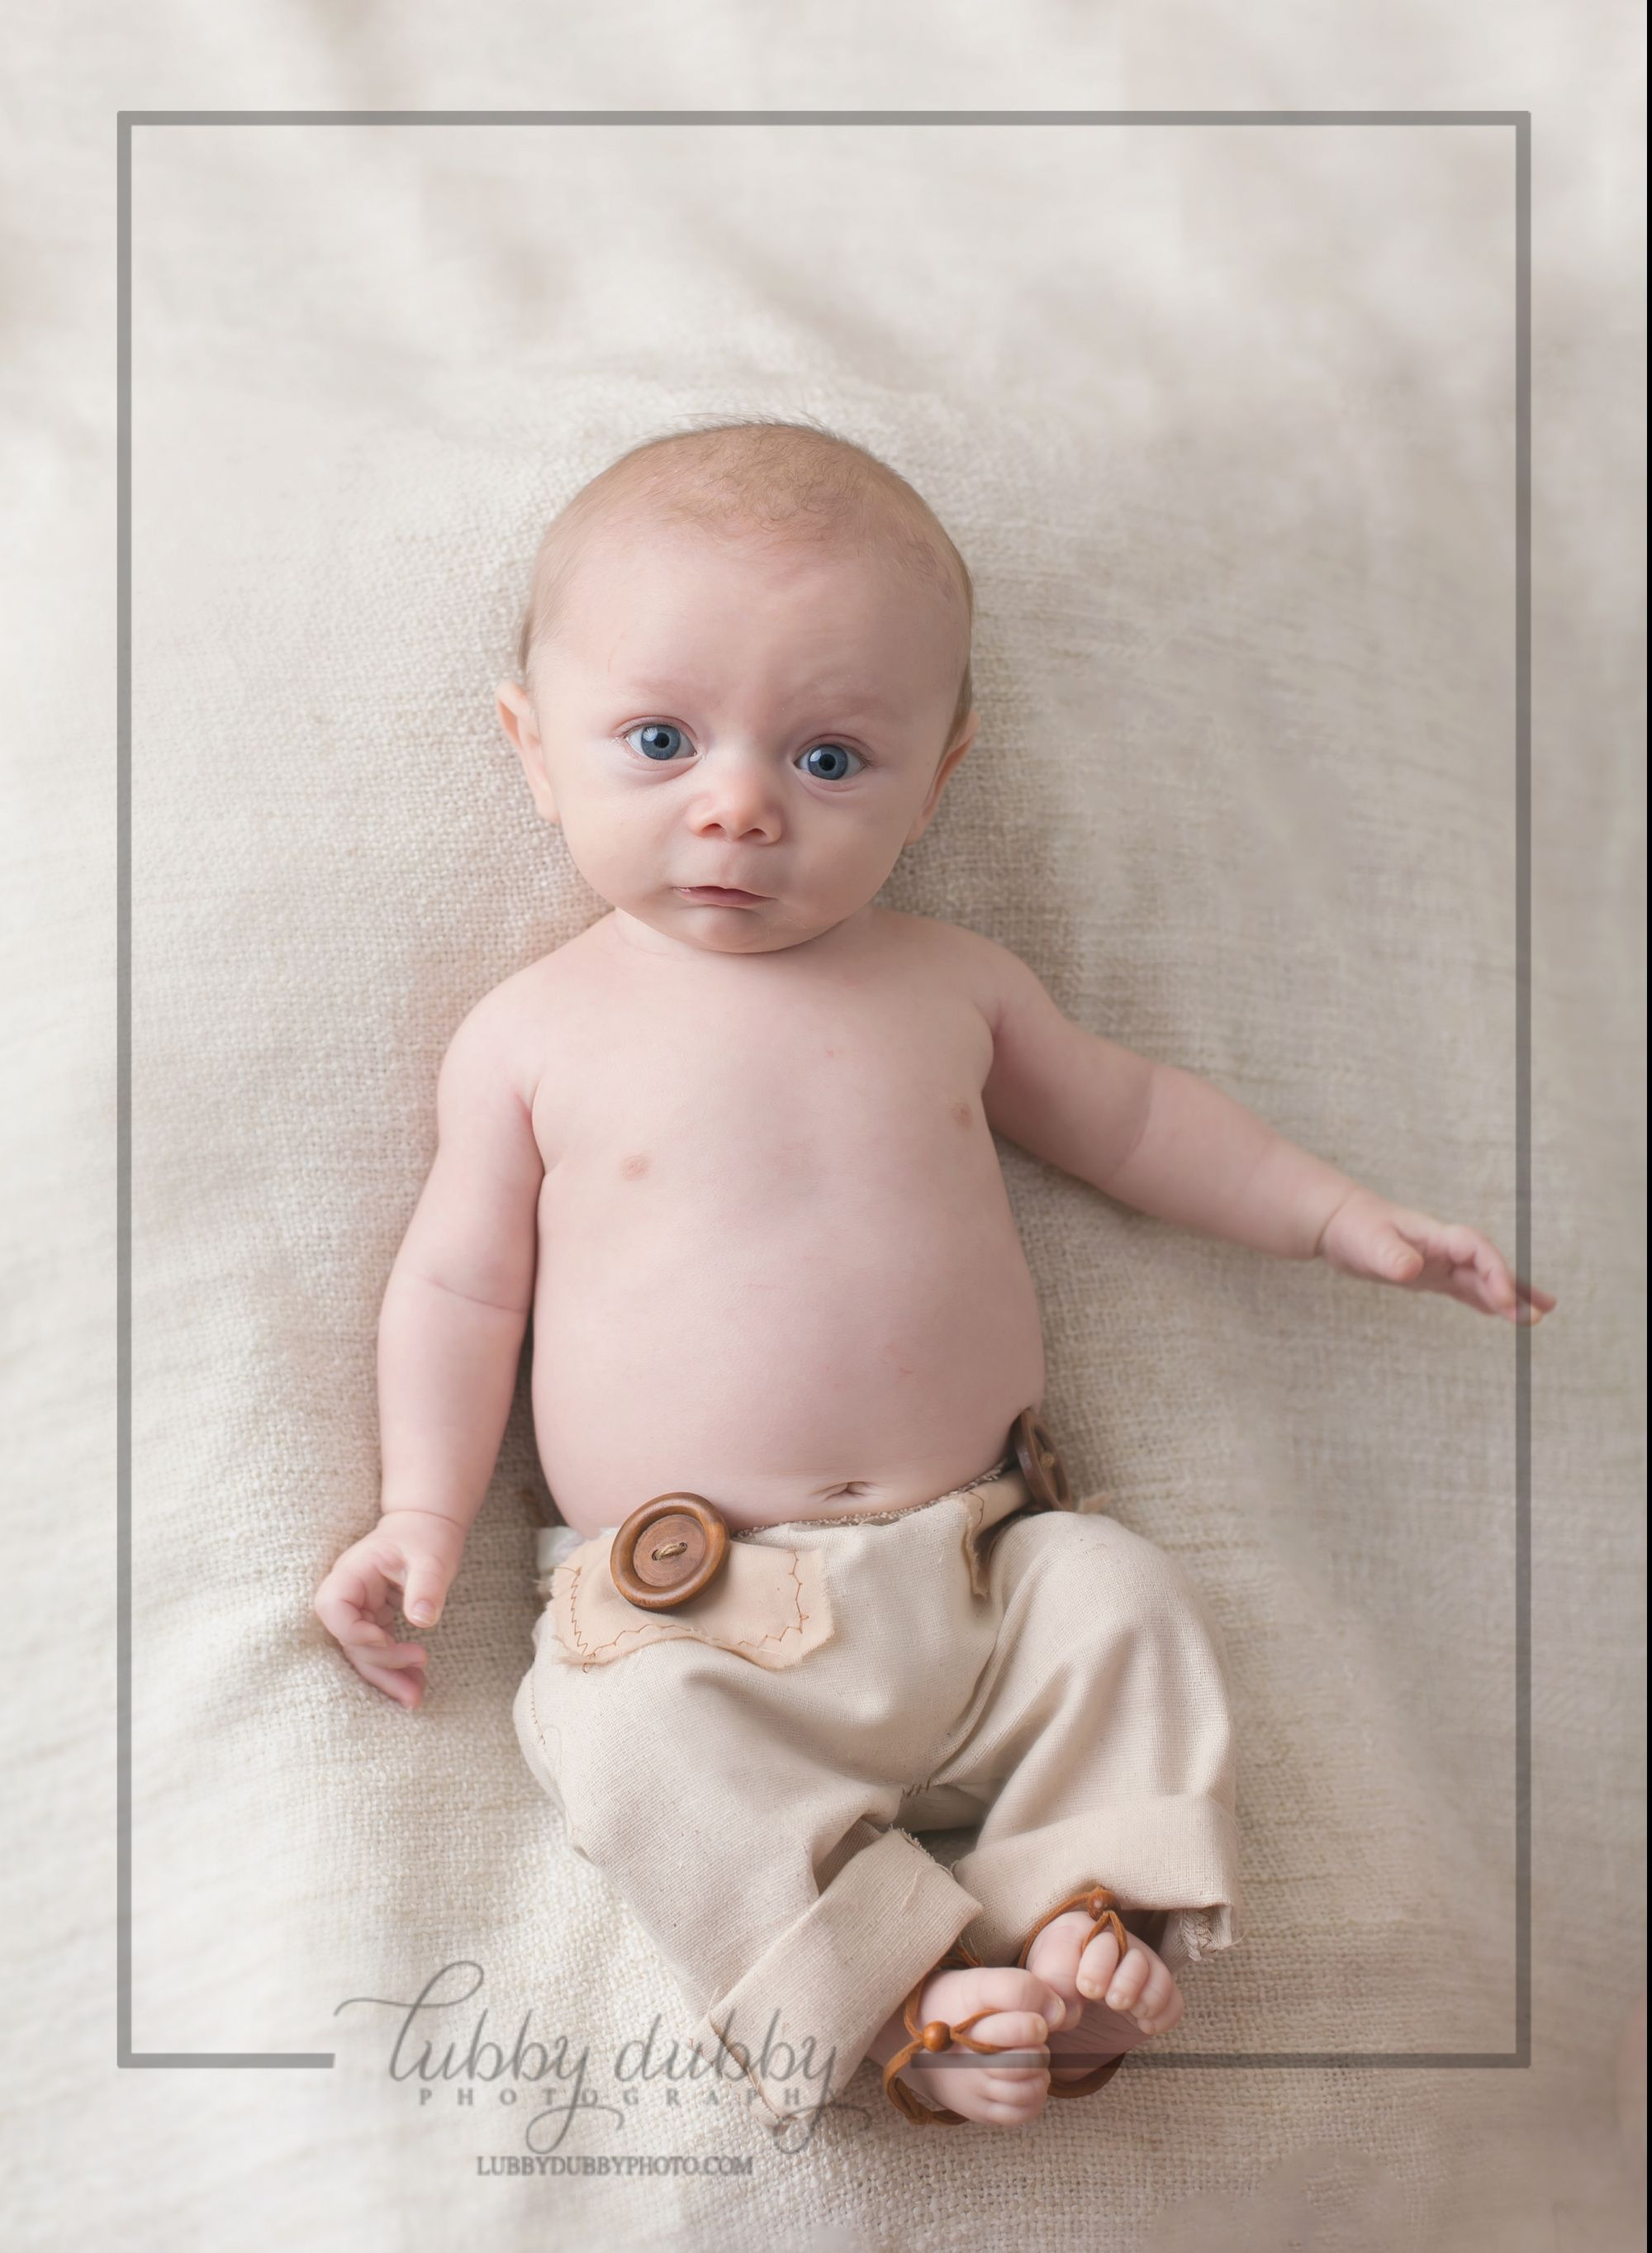 4 newborn photography tips that will have you taking photos like a pro